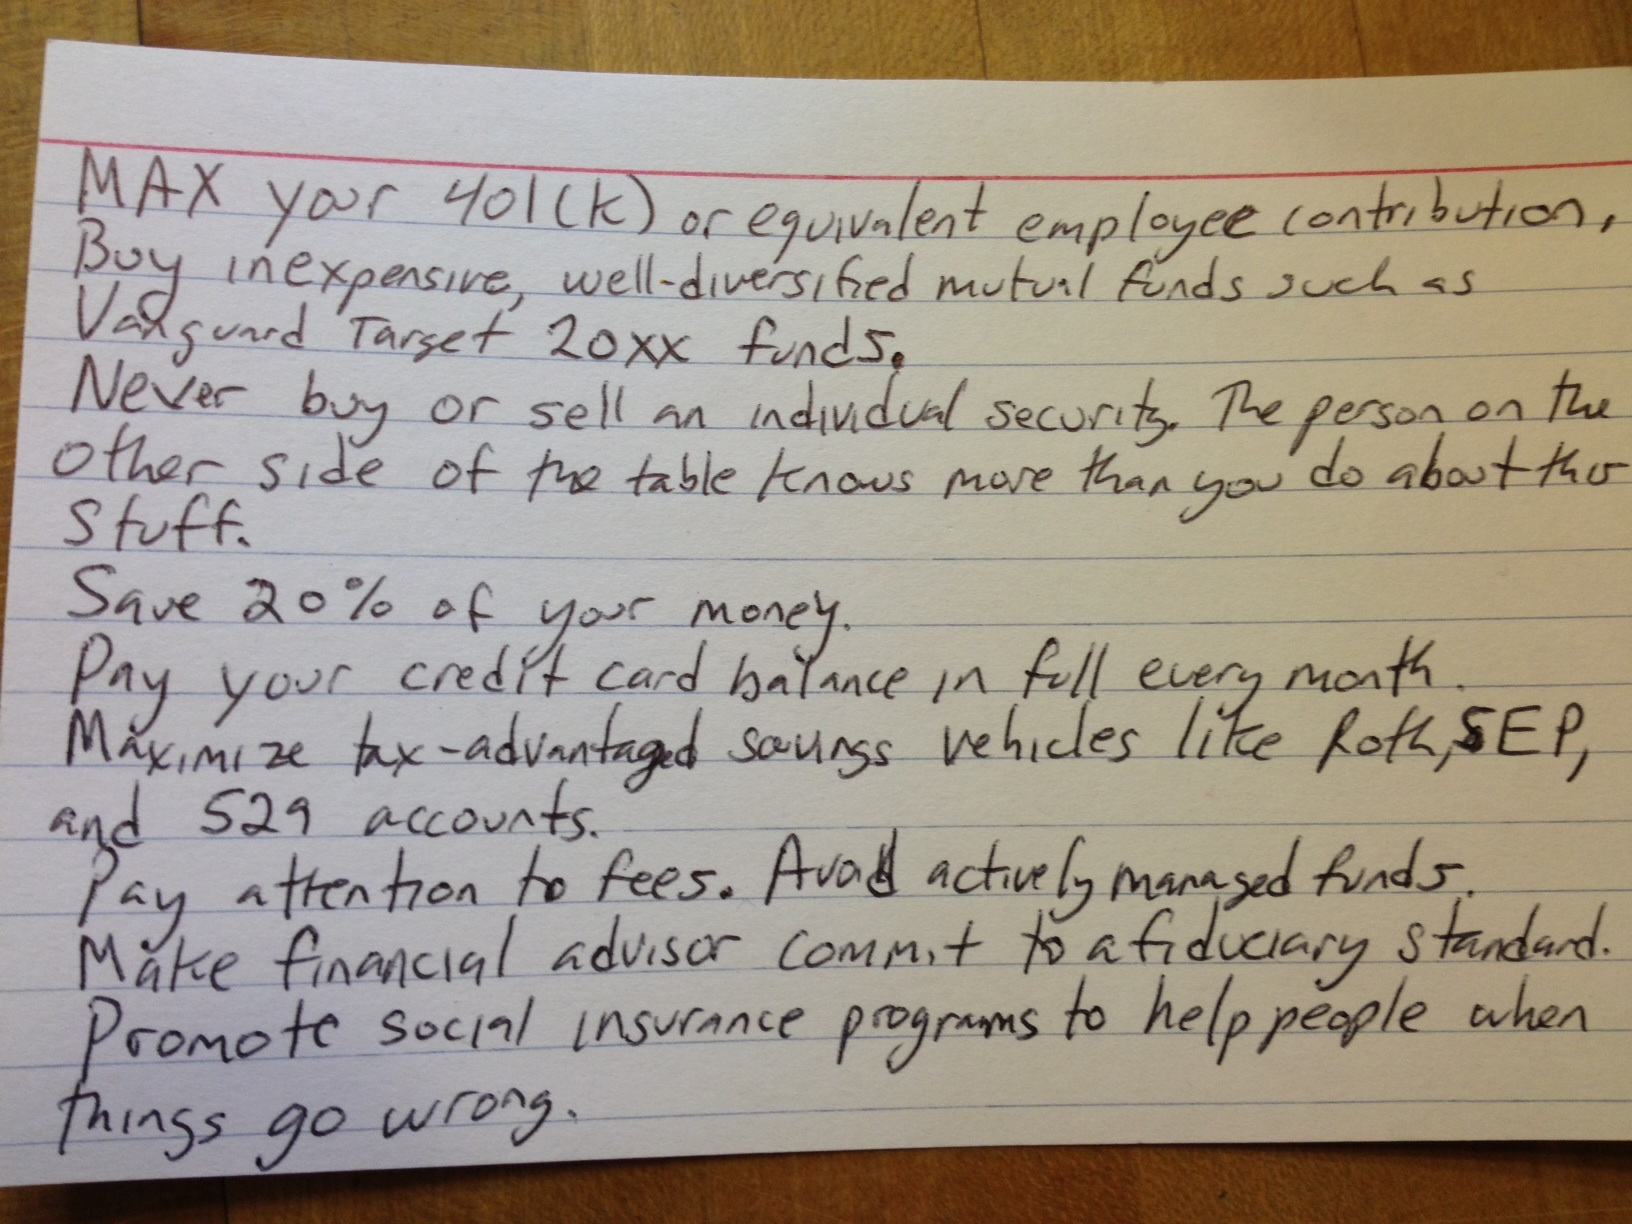 4 by 6 card financial advice